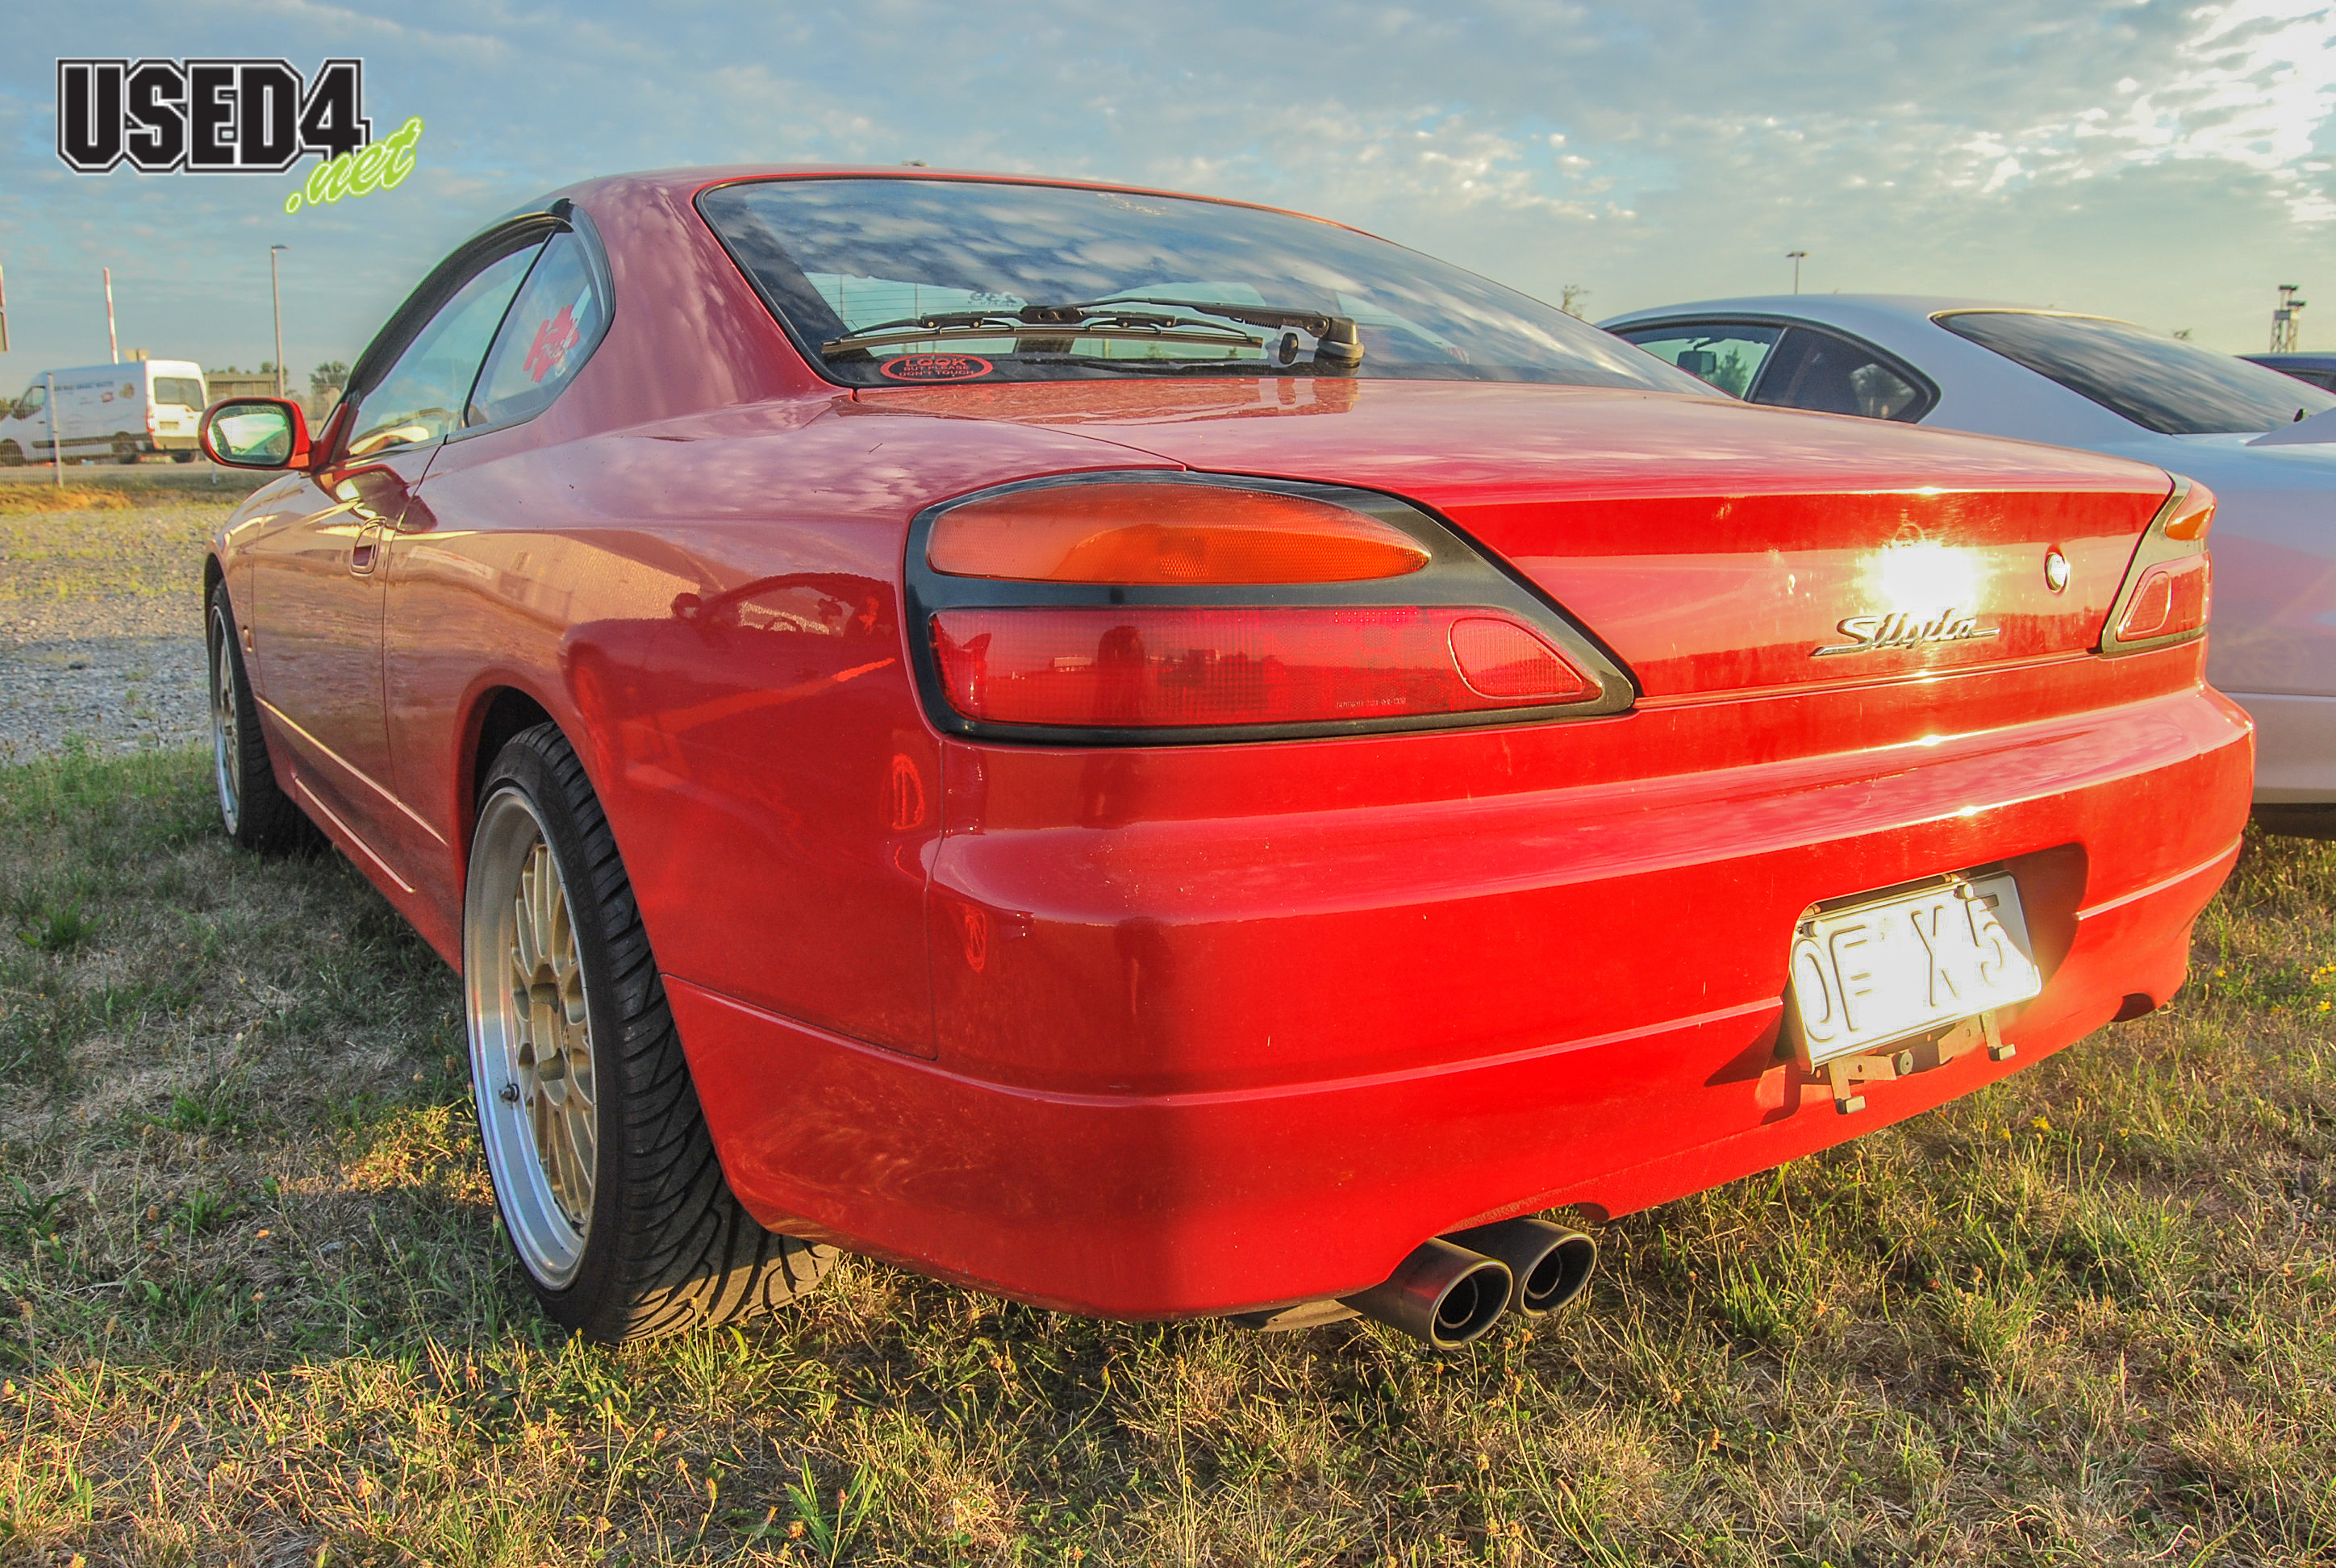 Treffen des S15 Owners Club: Meet the Silvias